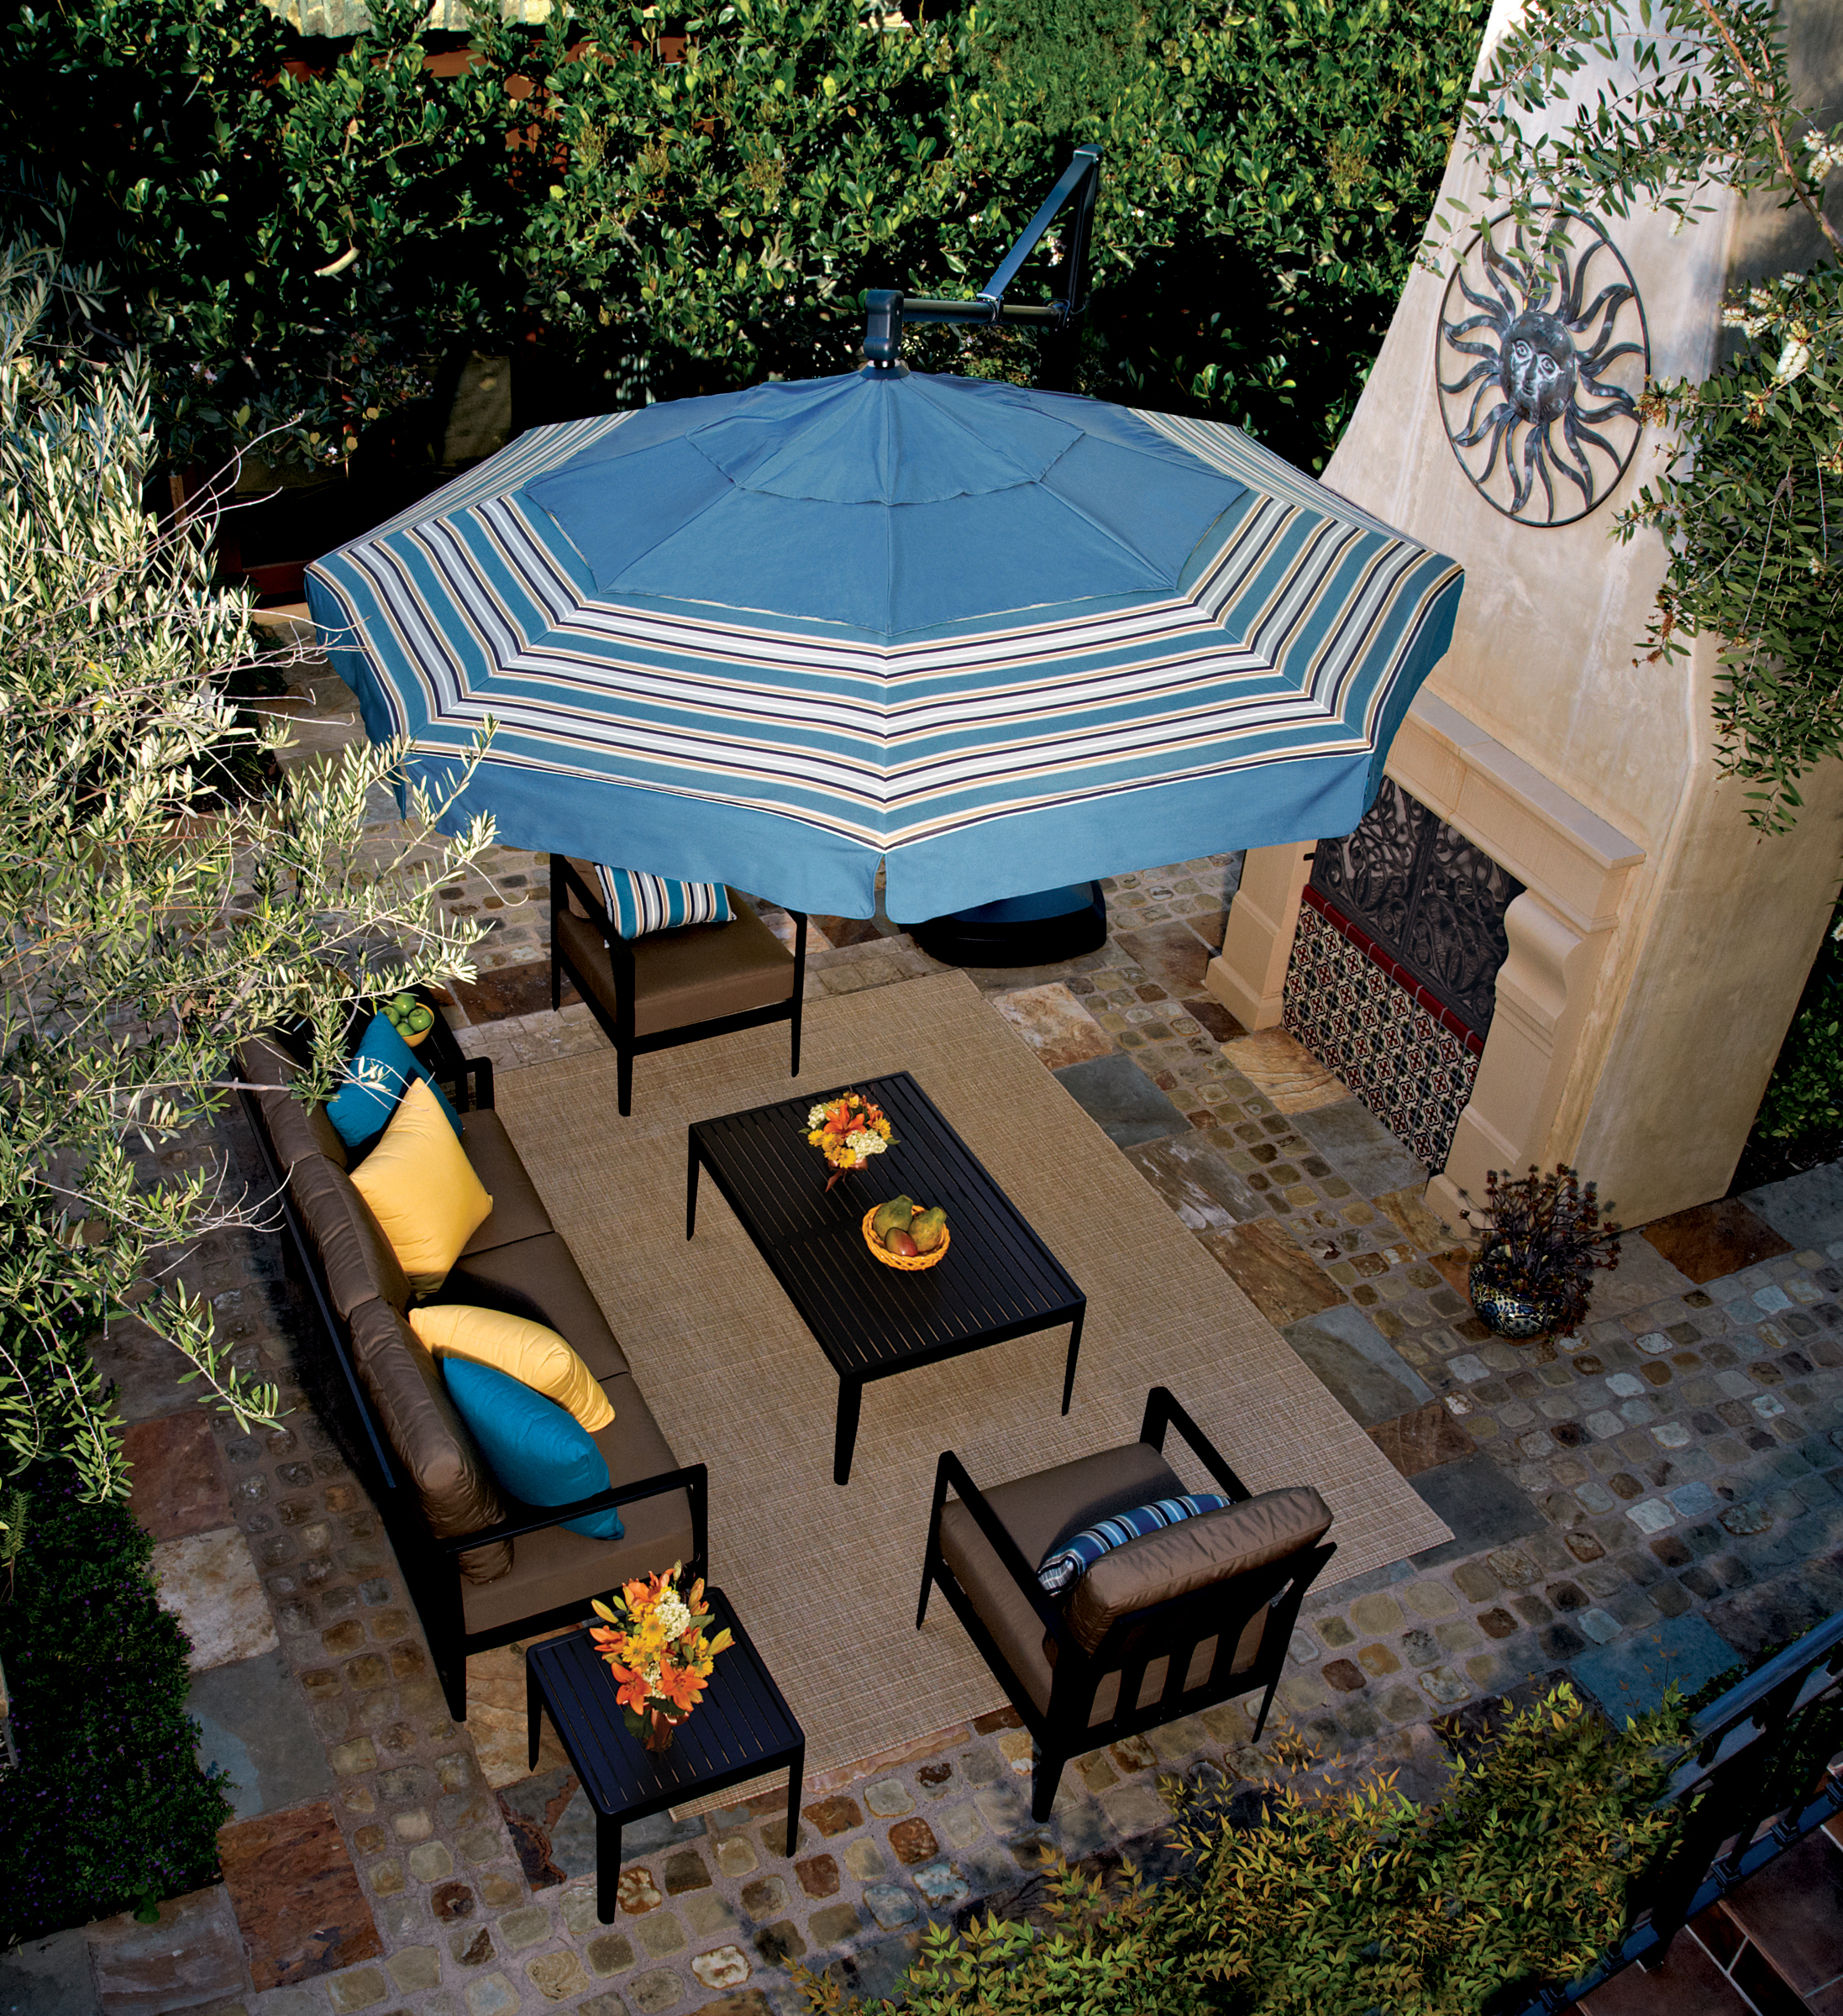 13 Foot Cantilever Umbrella with Valance